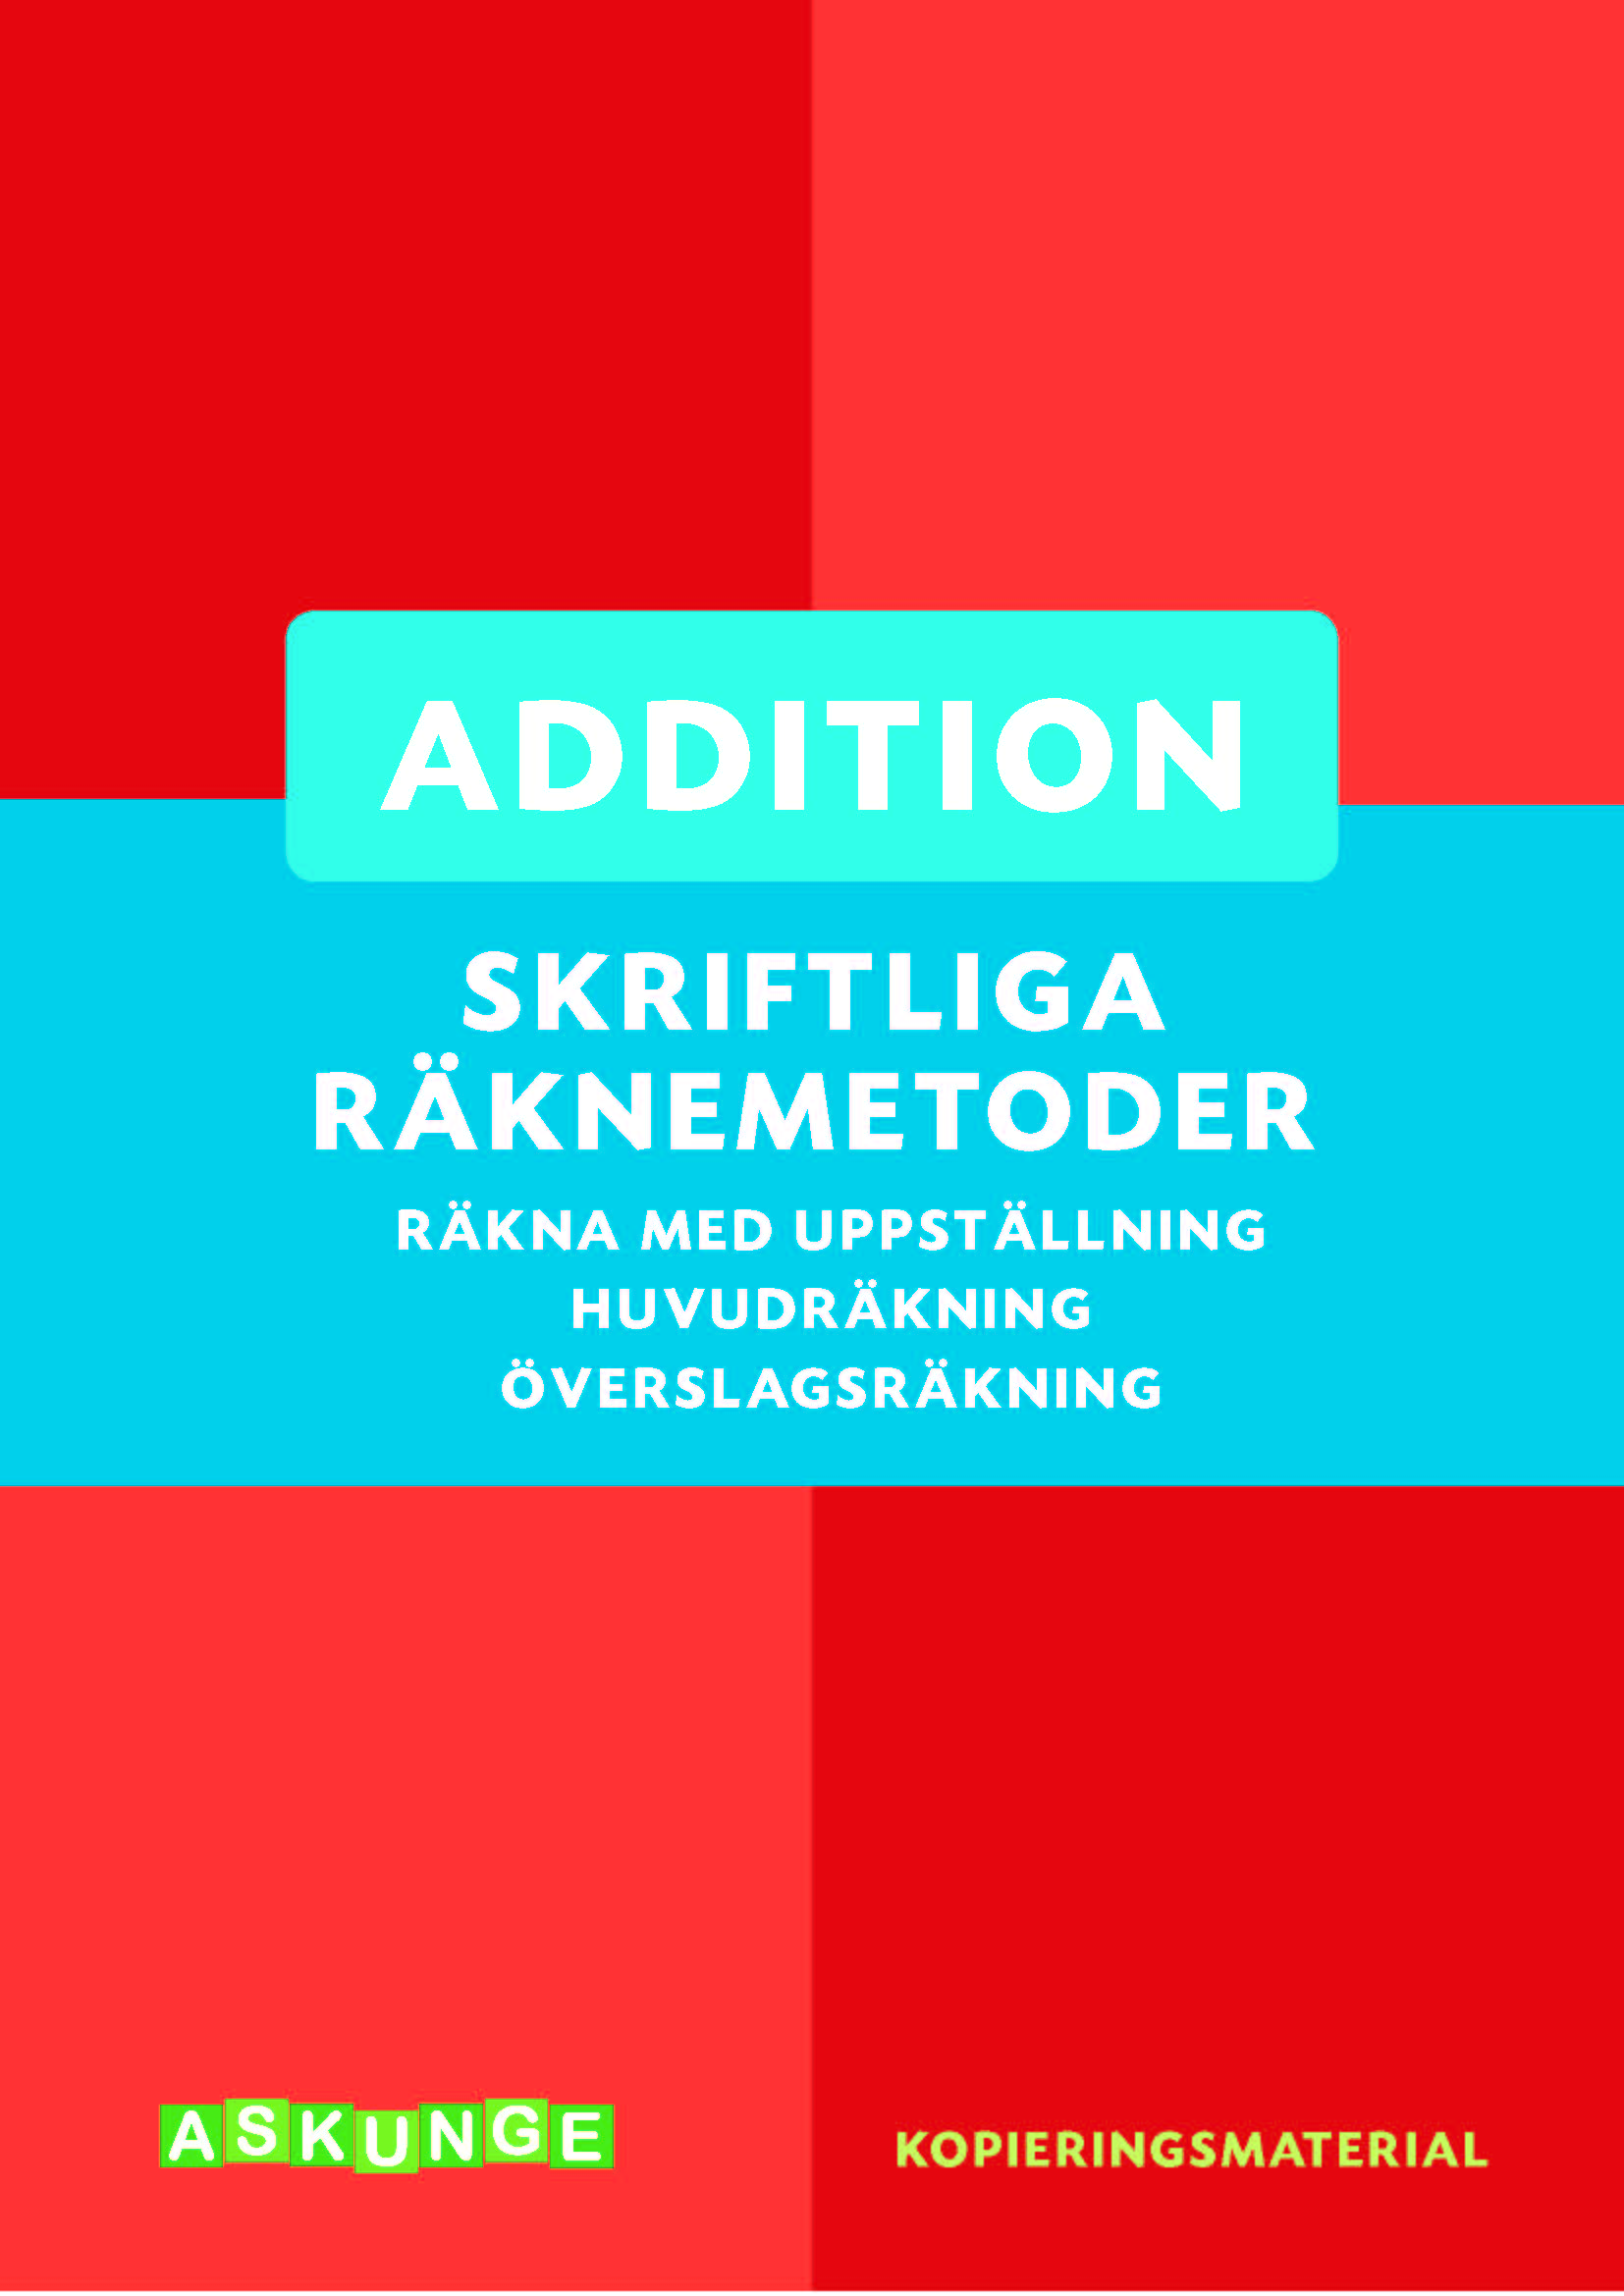 Skriftliga räknemetoder Addition